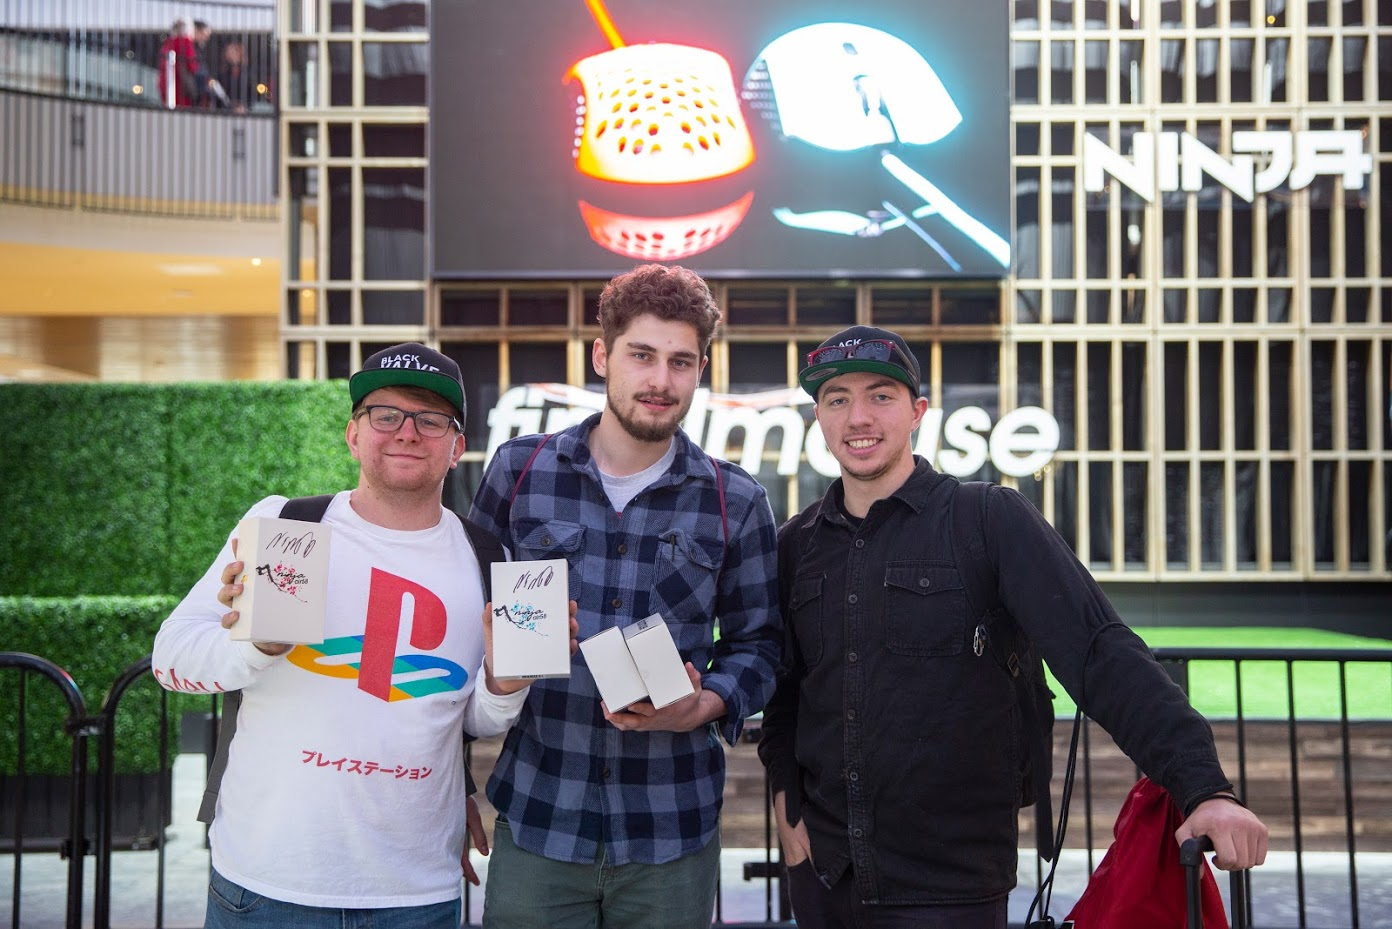 From left to right: Evan Prunty, Alec Miller and Hunter Prunty at the Finalmouse event in Los Angeles.